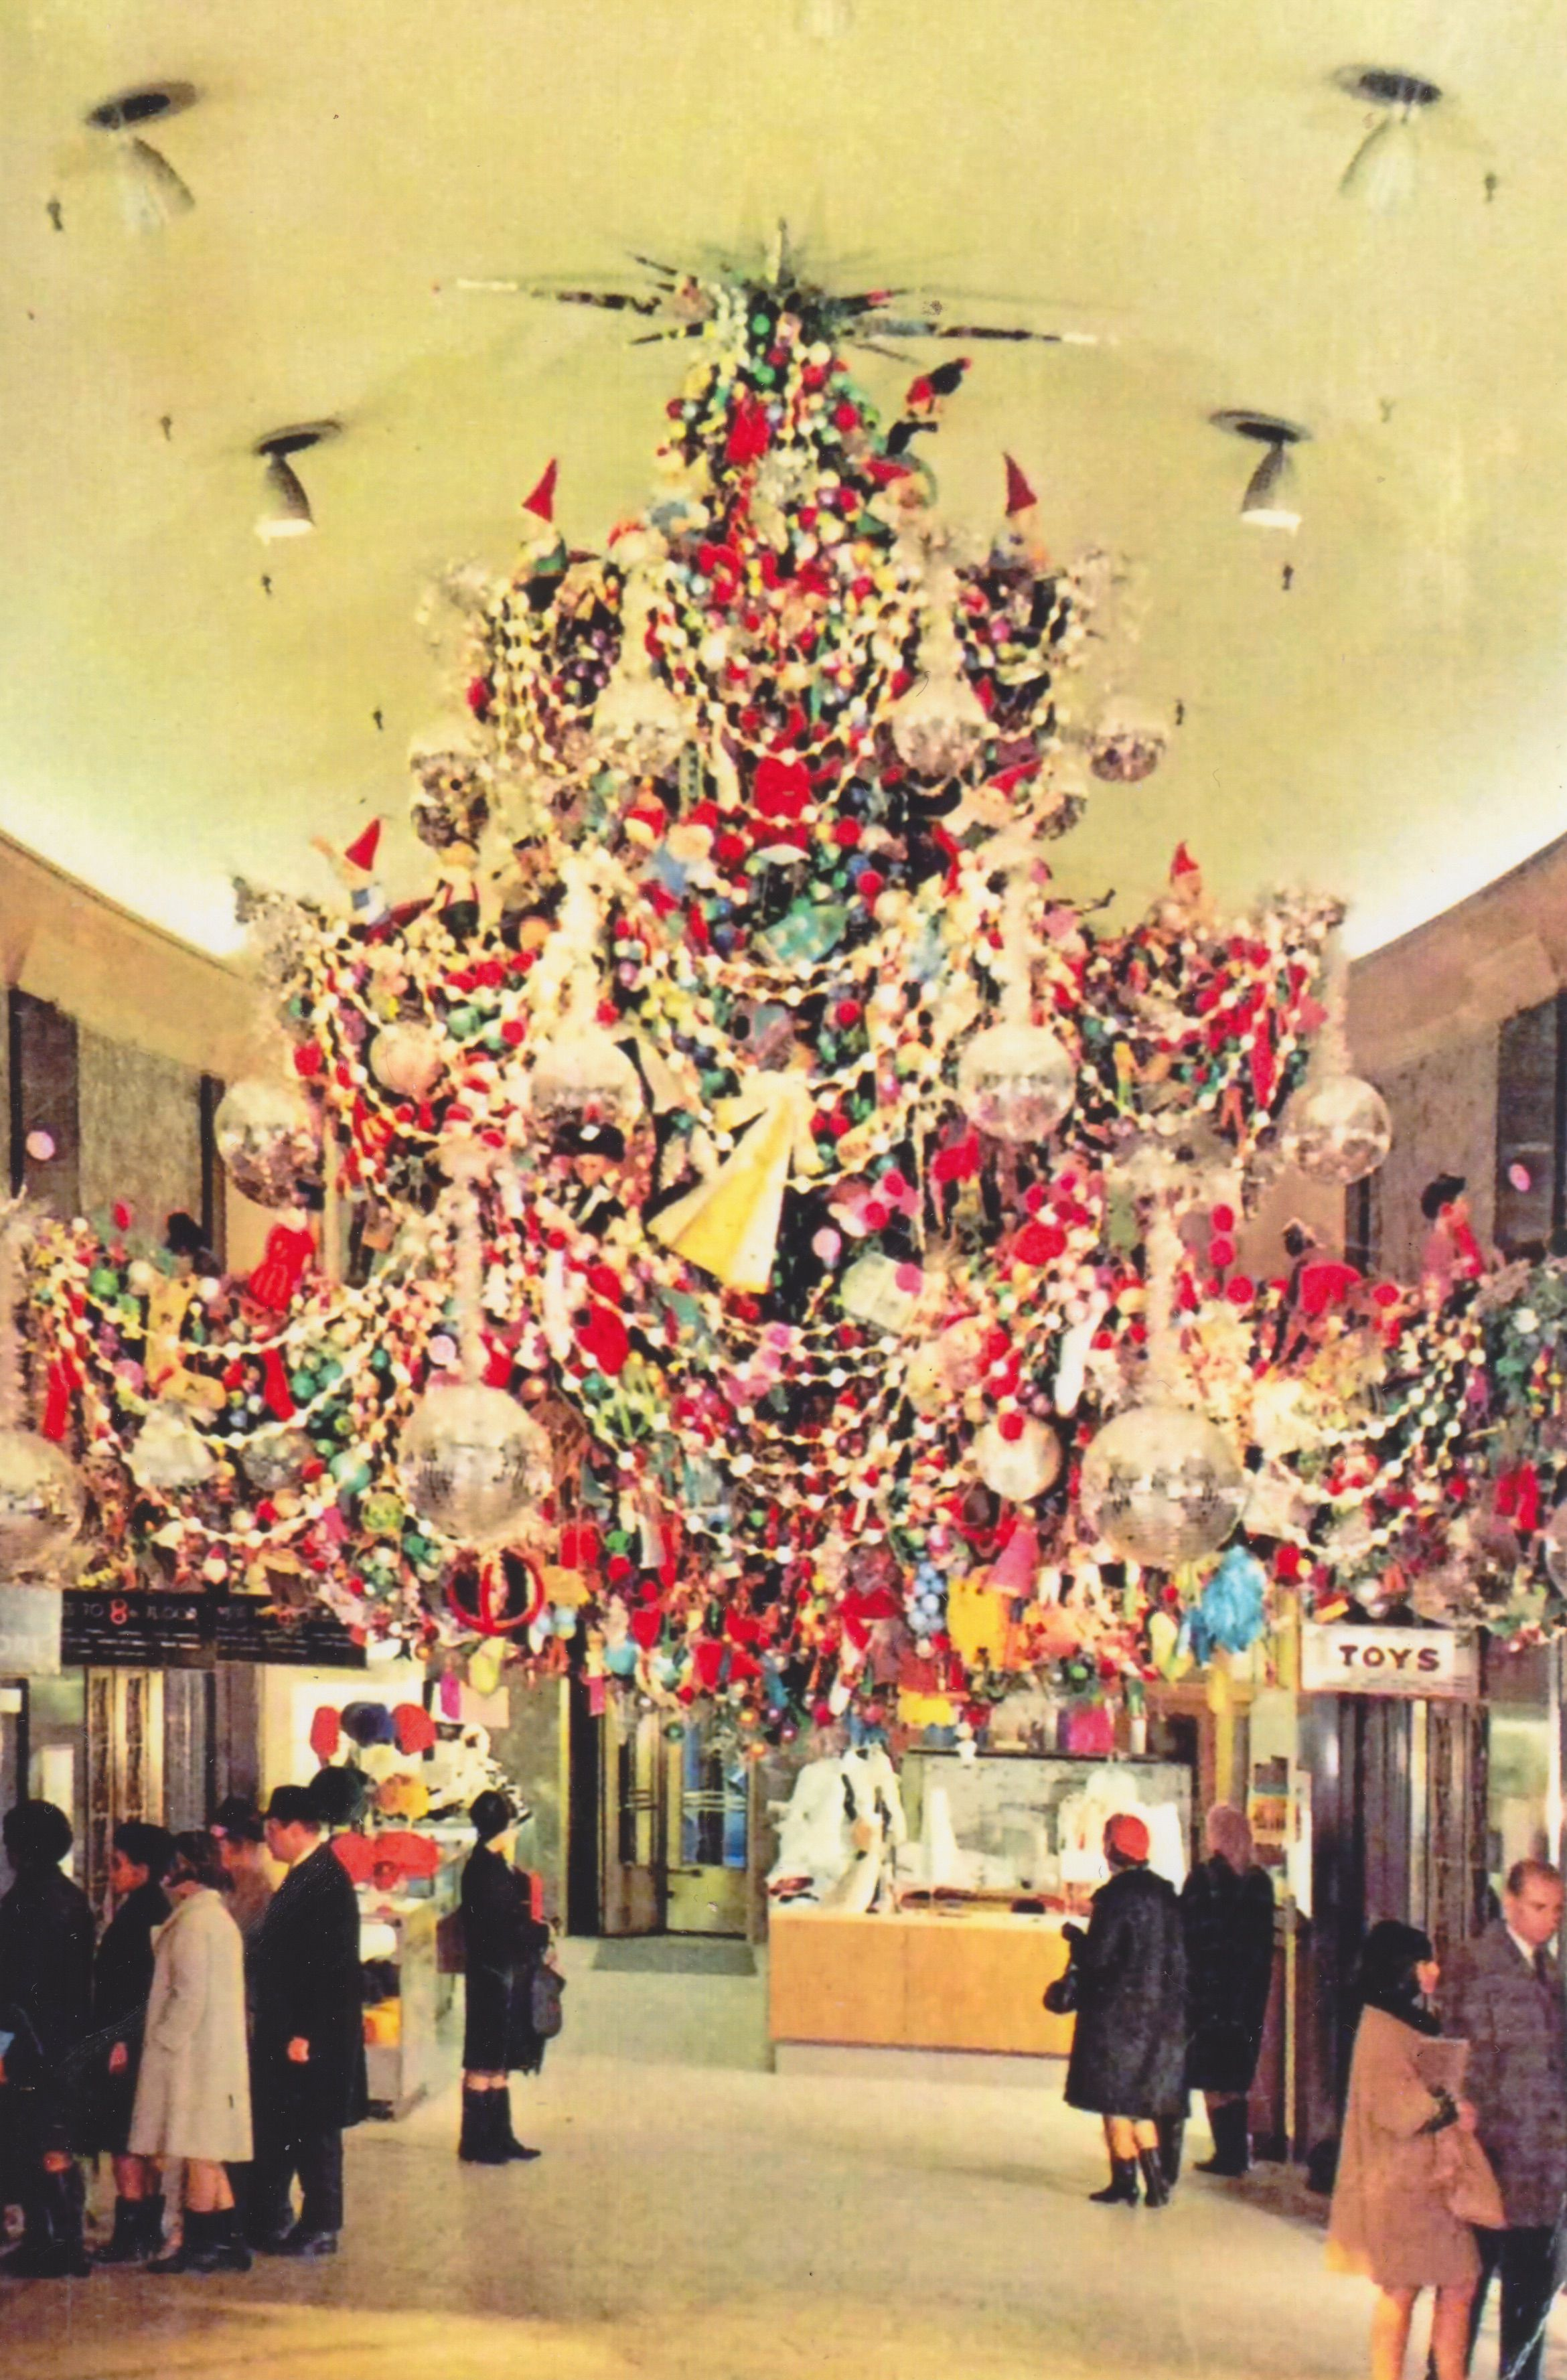 A Company Postcard Depicts The Revolving Christmas Tree In The